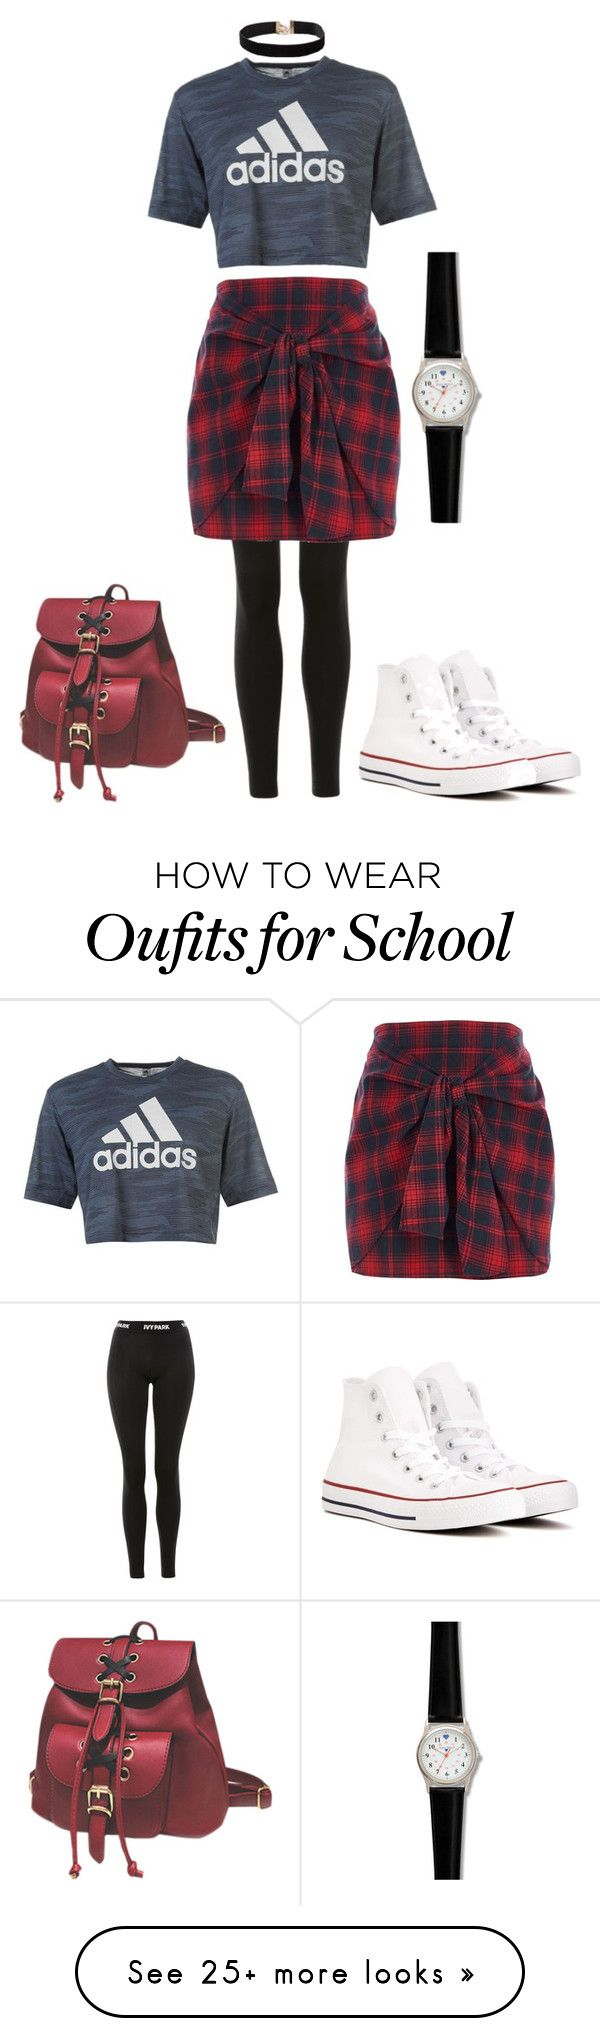 """""""School Outfit"""" by eri-tay on Polyvore featuring Topshop, River Island, Converse, adidas, Dorothy Perkins and Nurse Mates"""